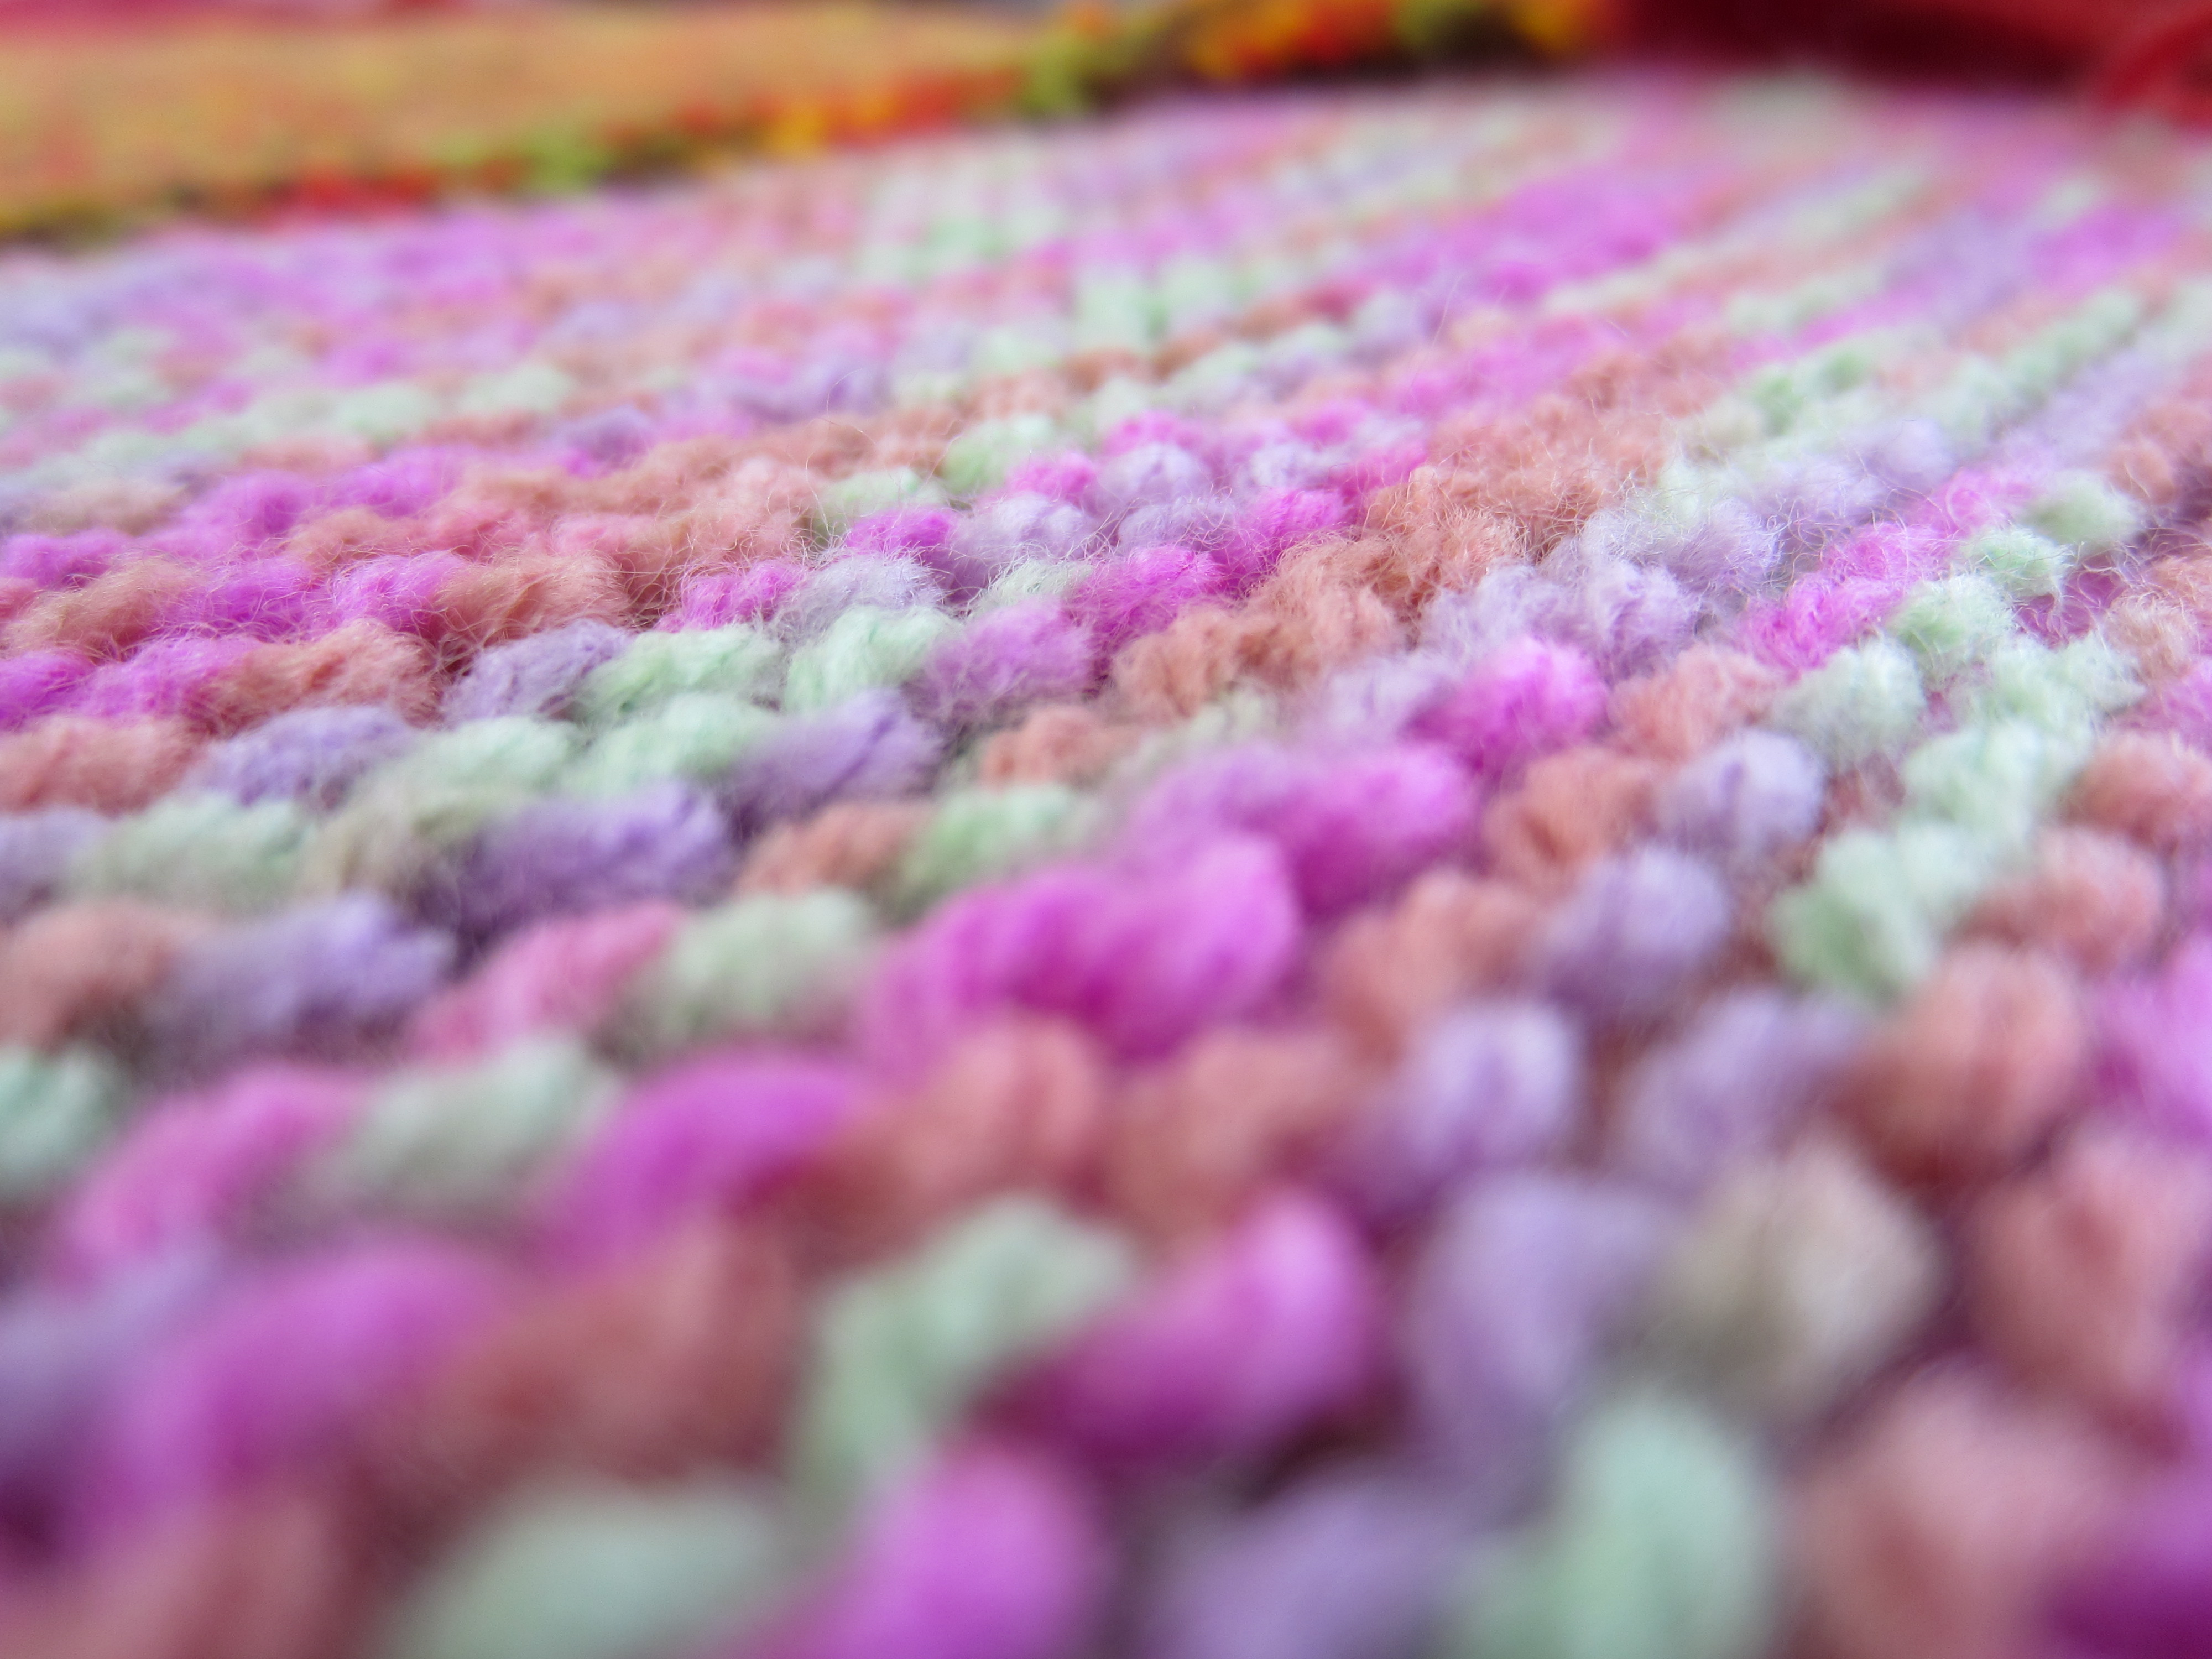 25cm knitted squares